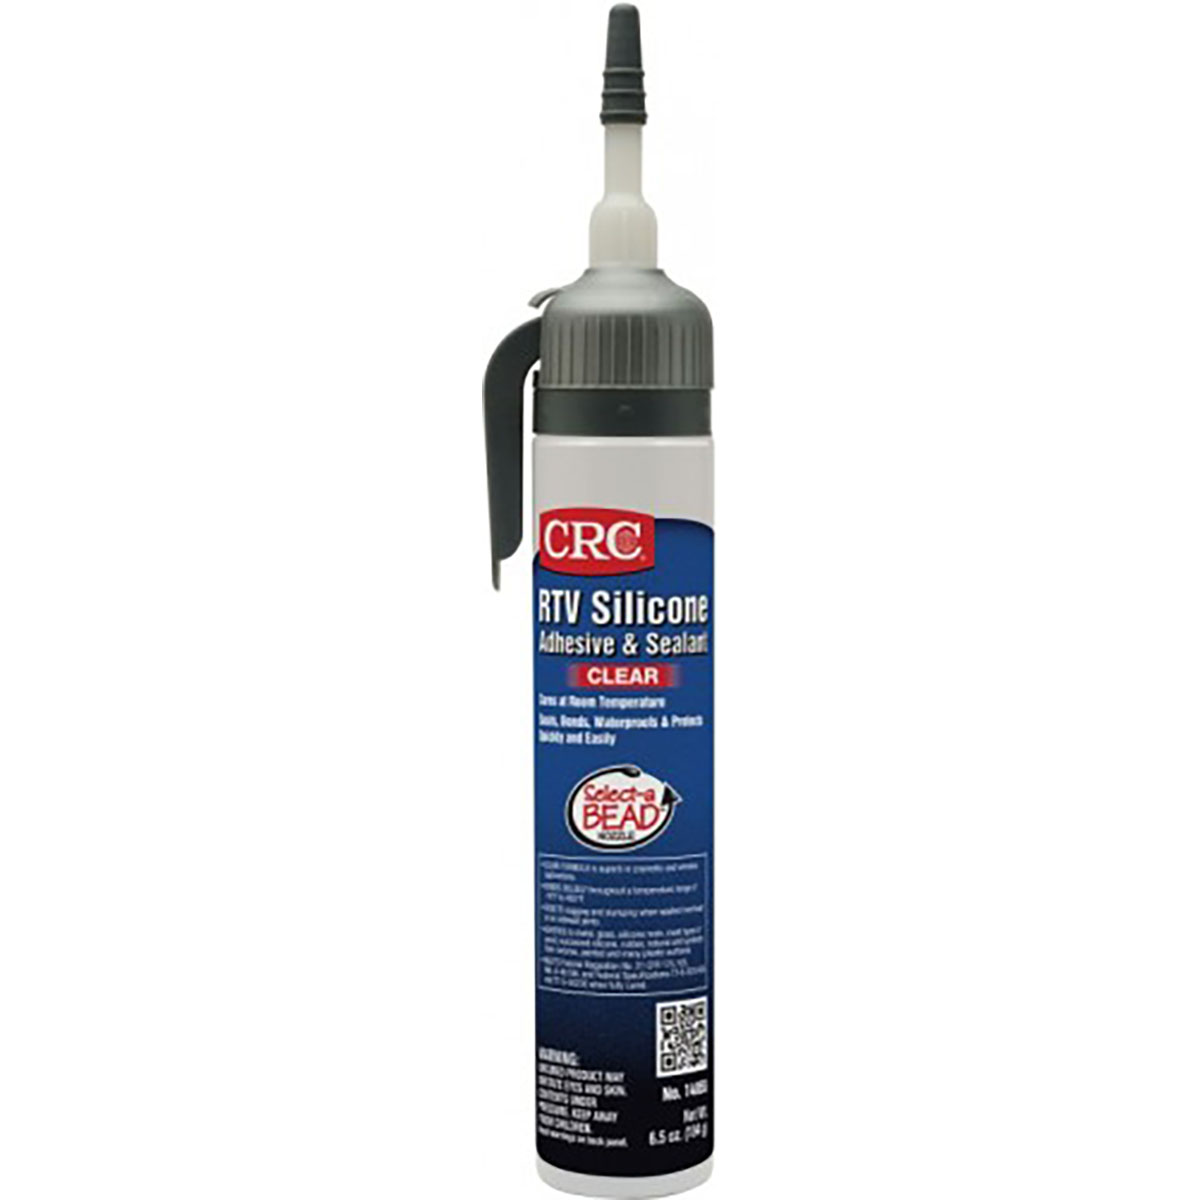 RTV Silicone Sealant - Clear, 6.5 Wt Oz